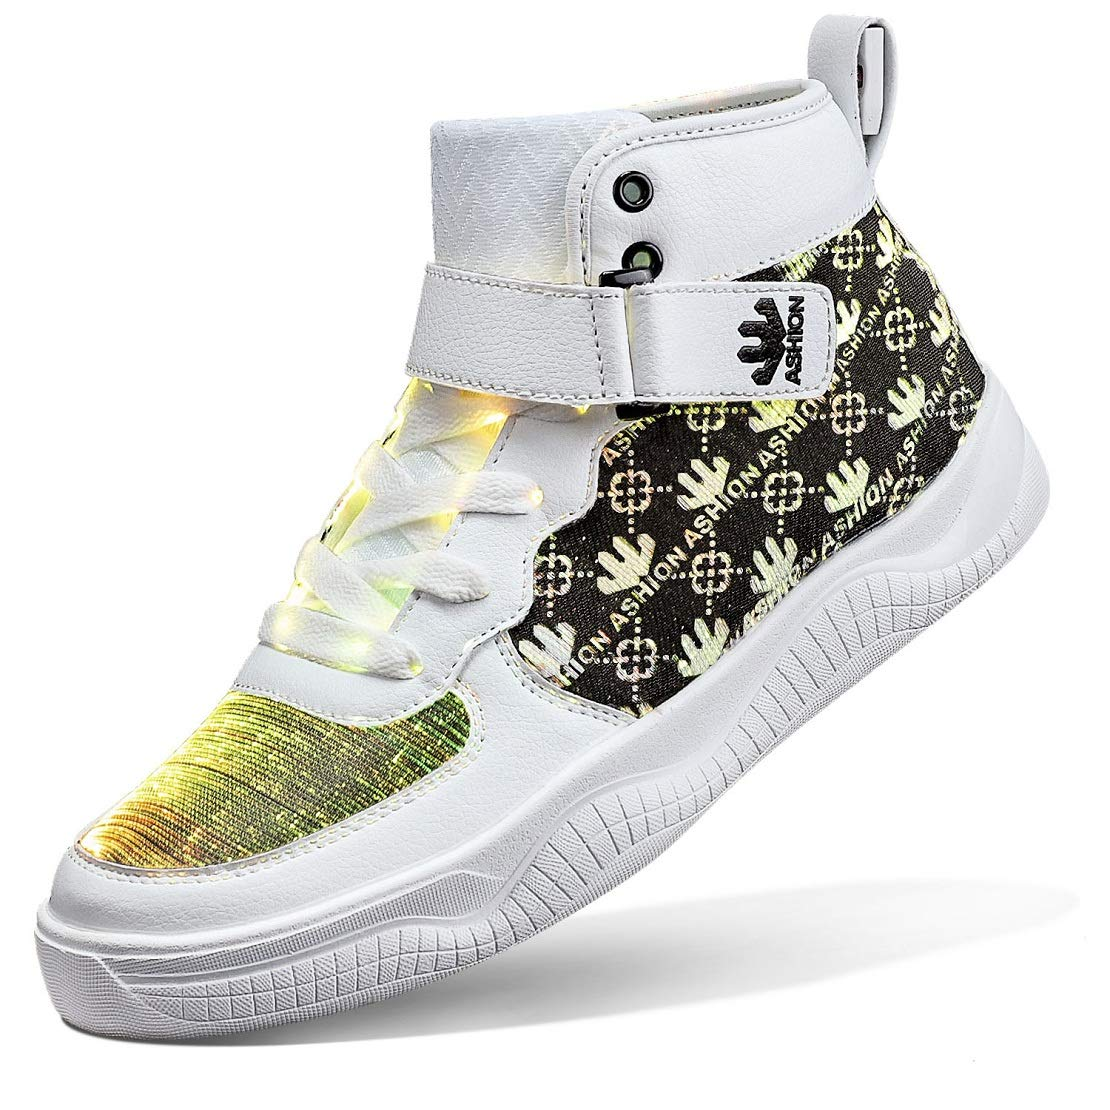 Buy AShion Fiber Optic LED Shoes Light Up Shoes for Women Men USB Charging Flashing Luminous Trainers for Festivals Christmas Party White Size 7.5 at Amazon.in